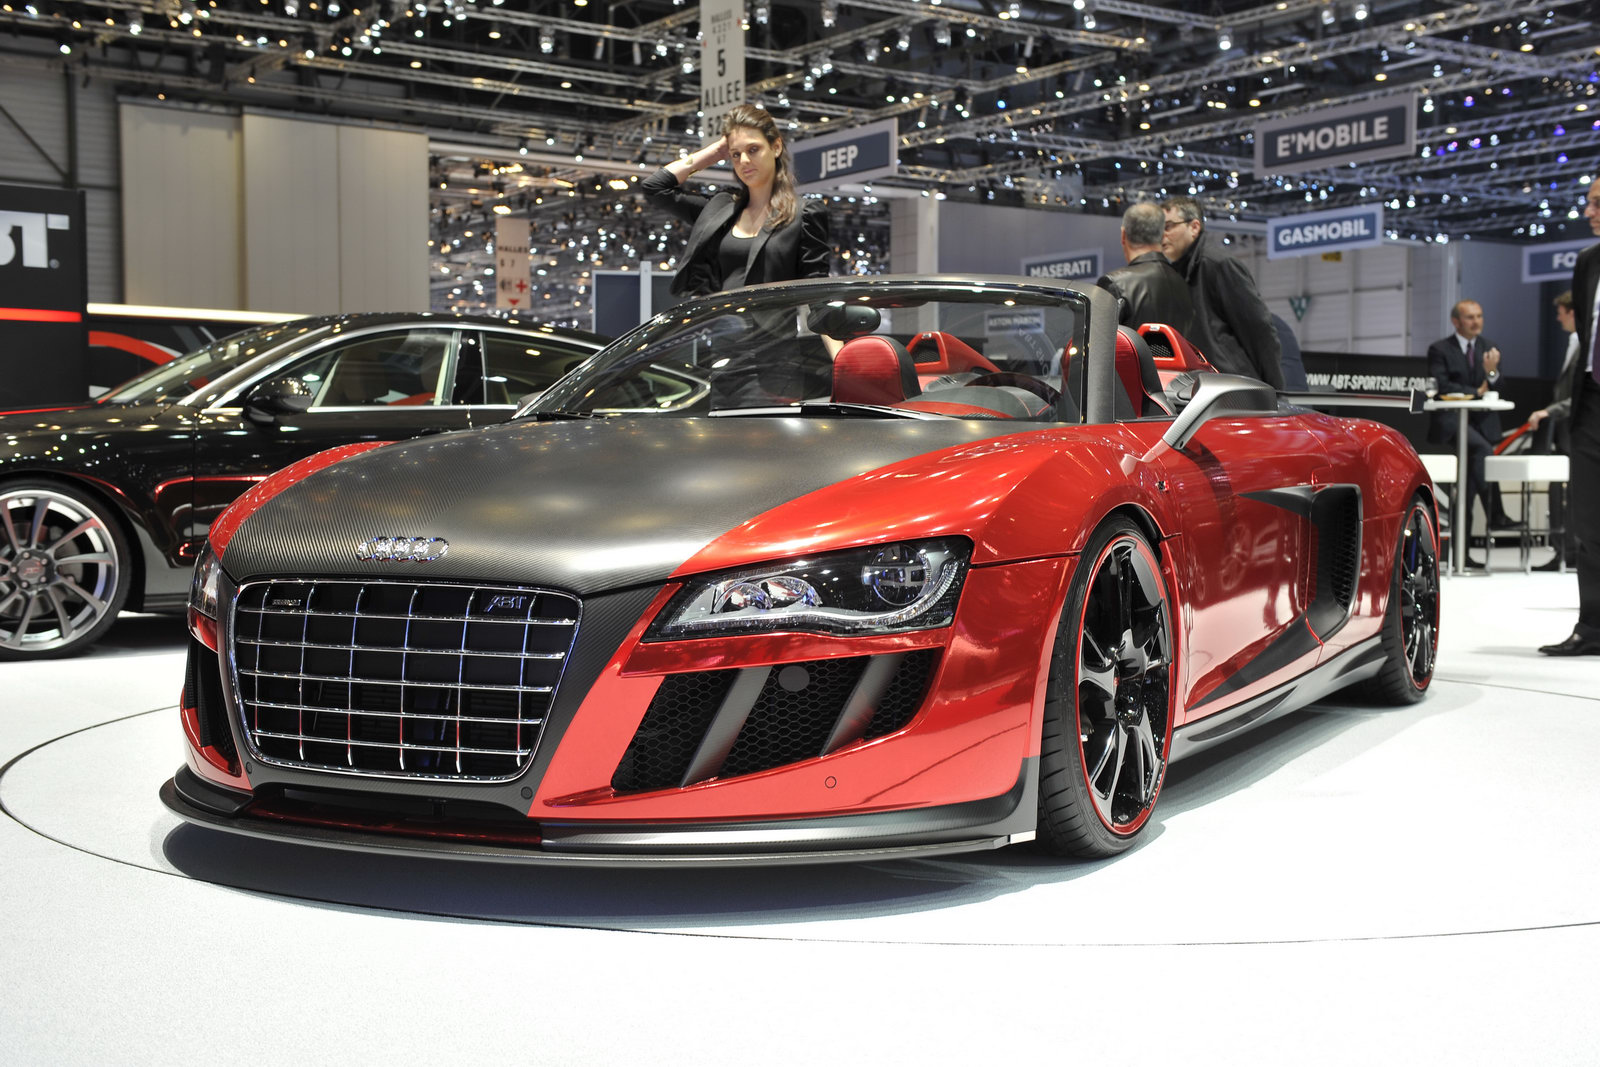 DICOVERY CHANNEL: Audi R8 Pics